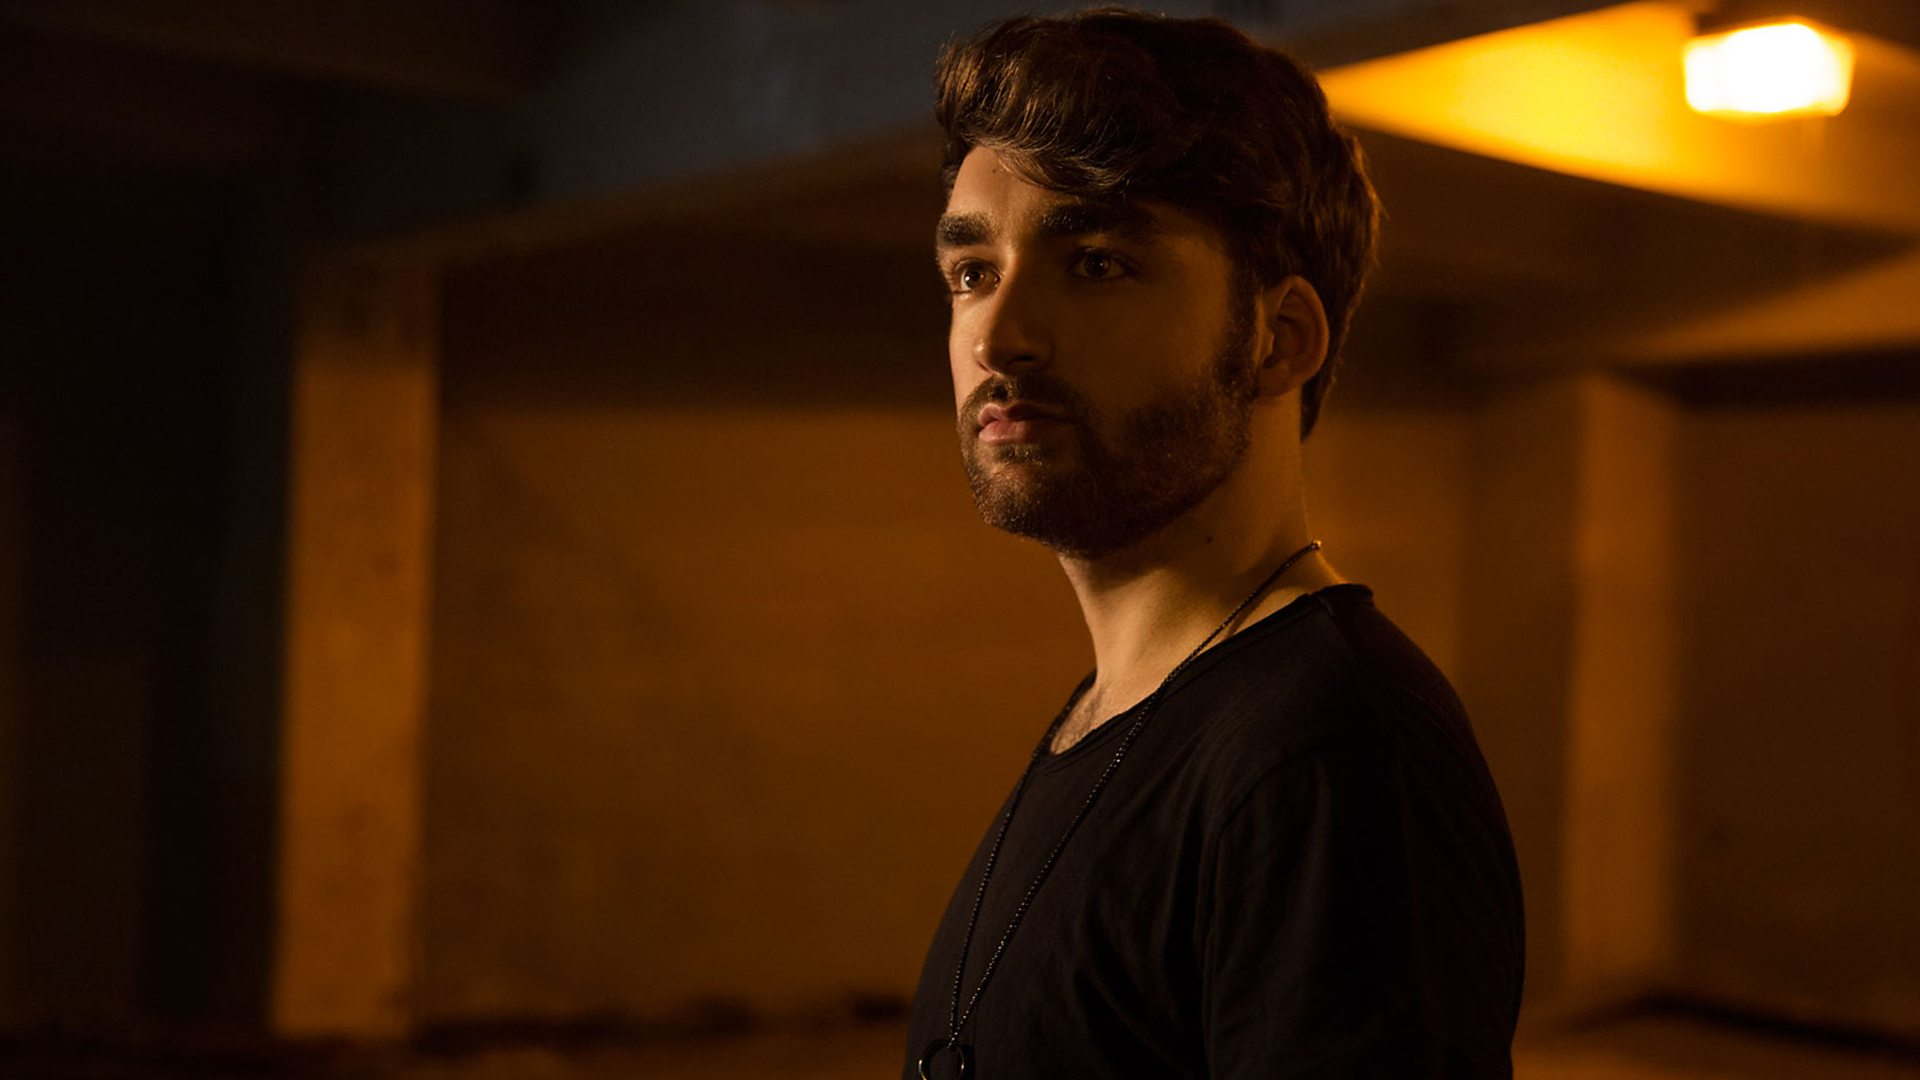 Oliver Heldens returns to the Essential Mix as HI-LO ile ilgili görsel sonucu